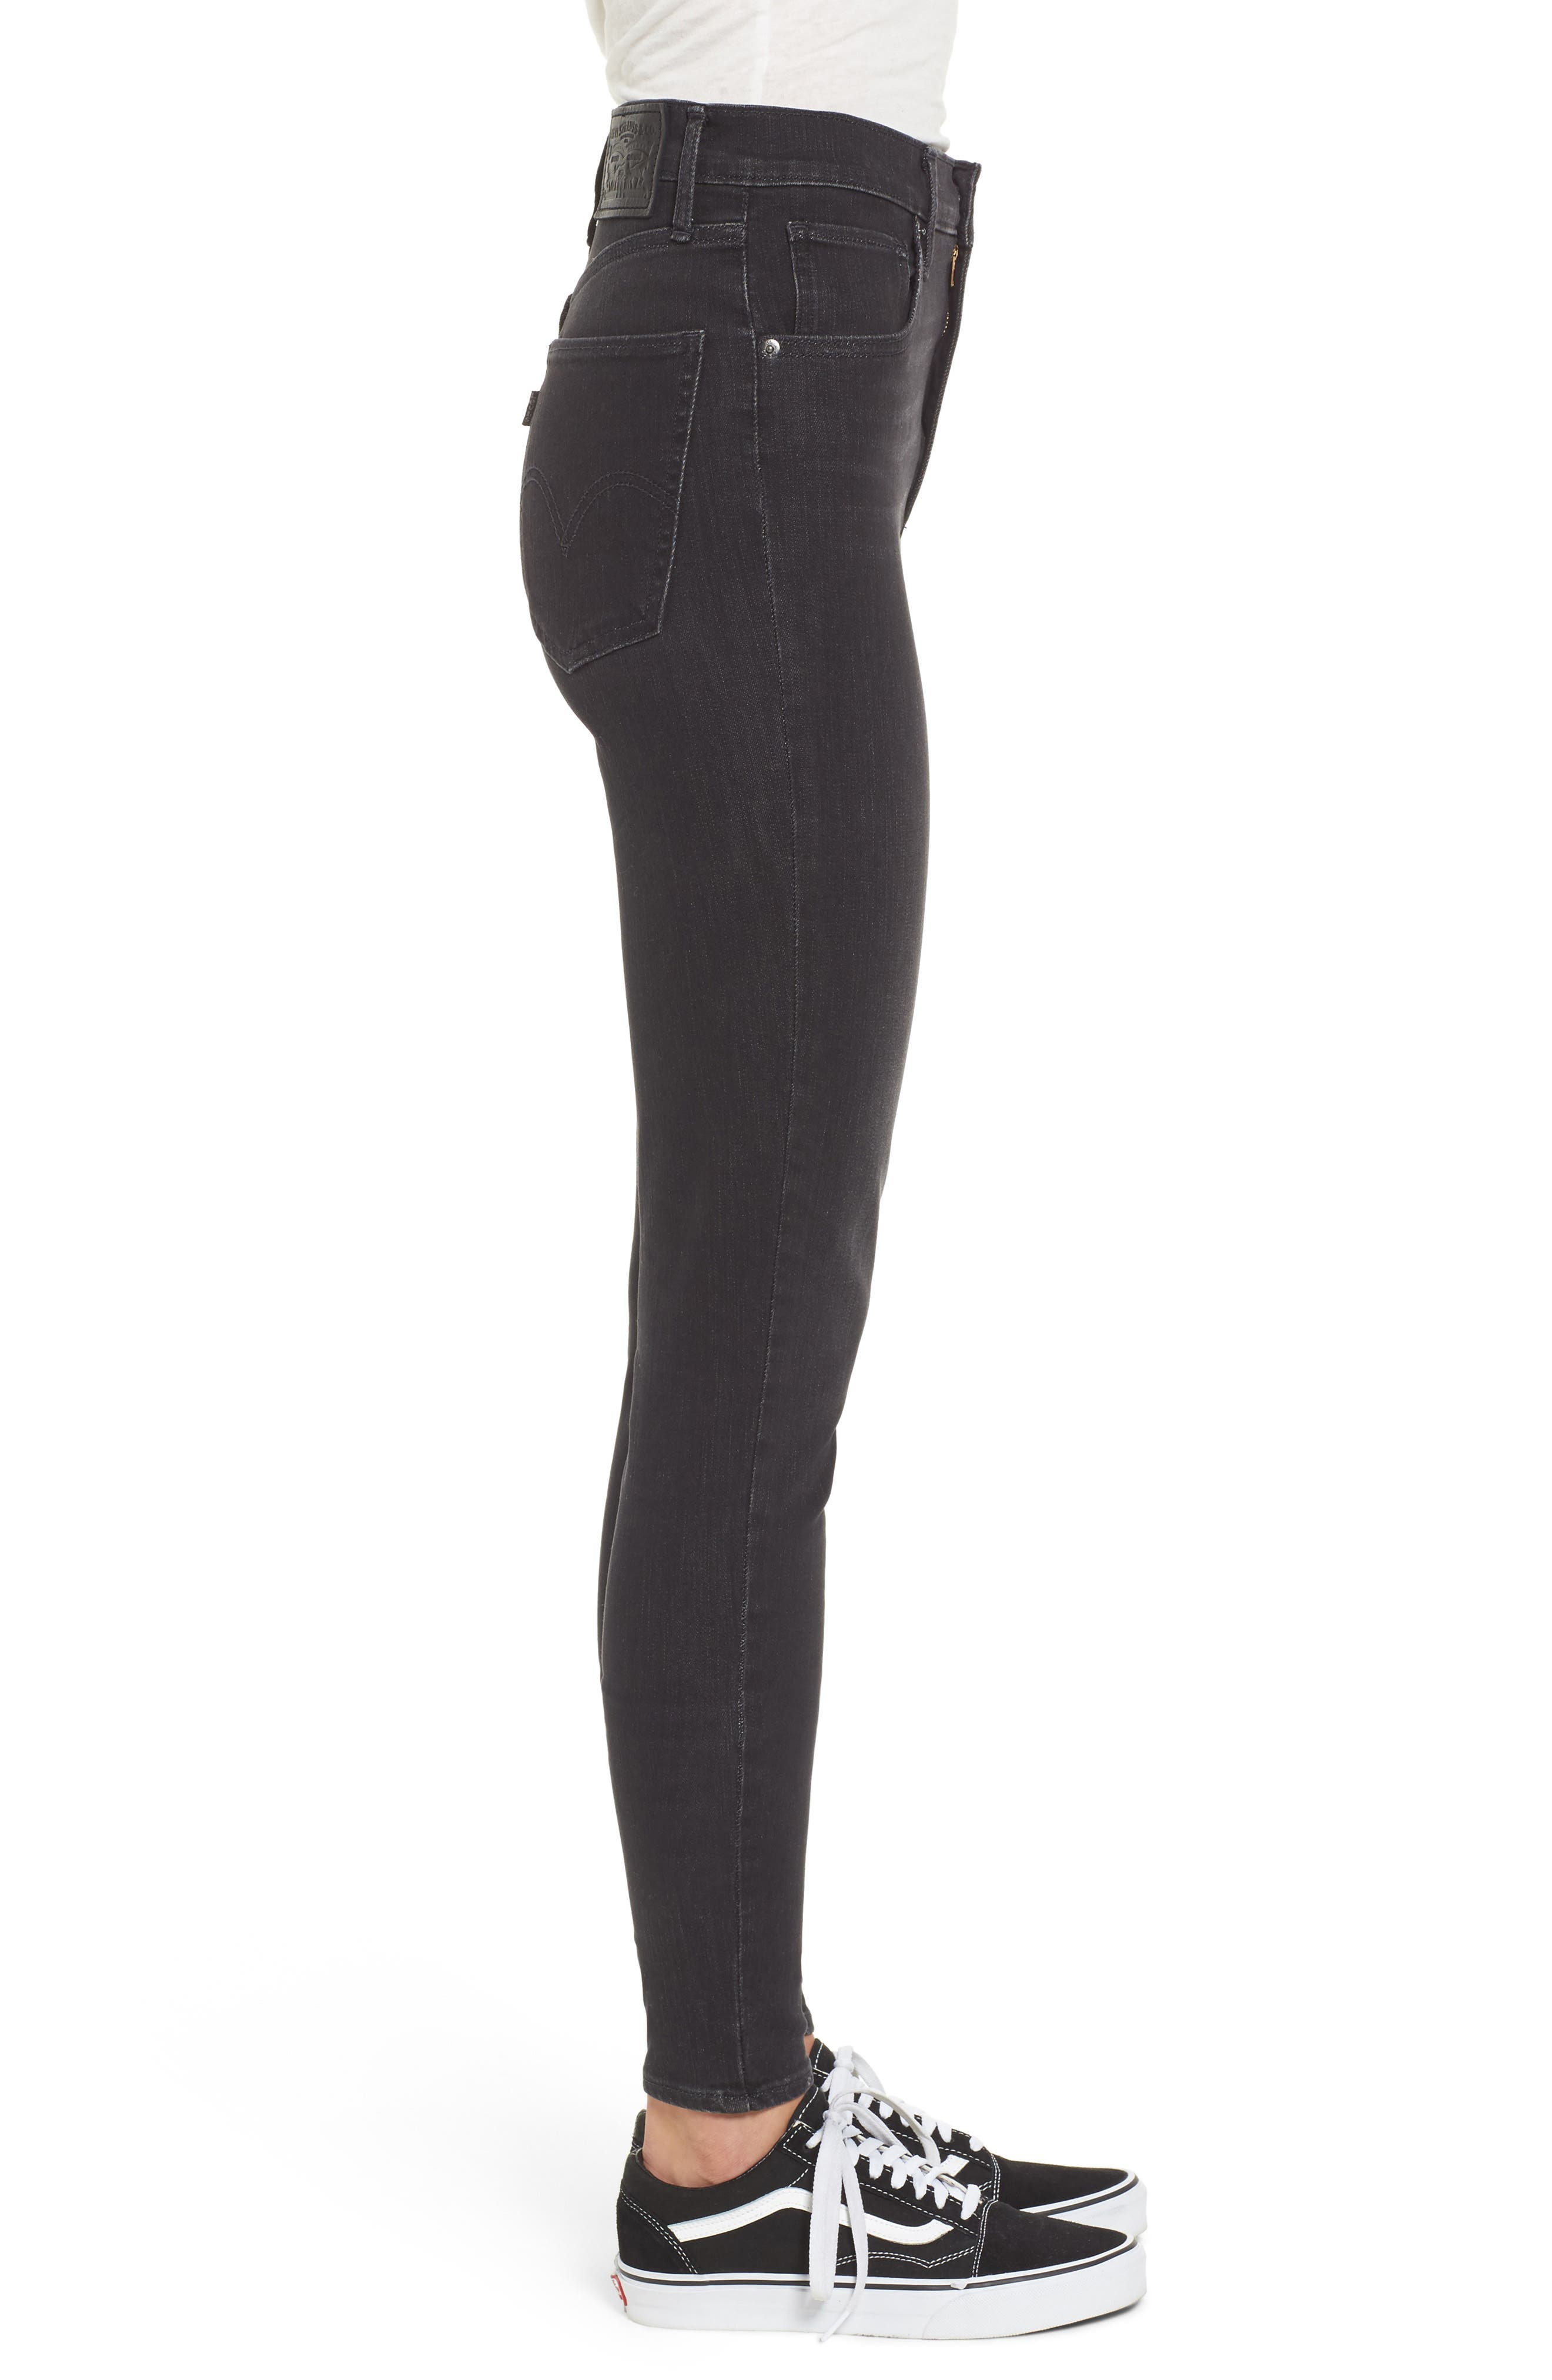 Mile High High Rise Skinny Jeans,                             Alternate thumbnail 3, color,                             001